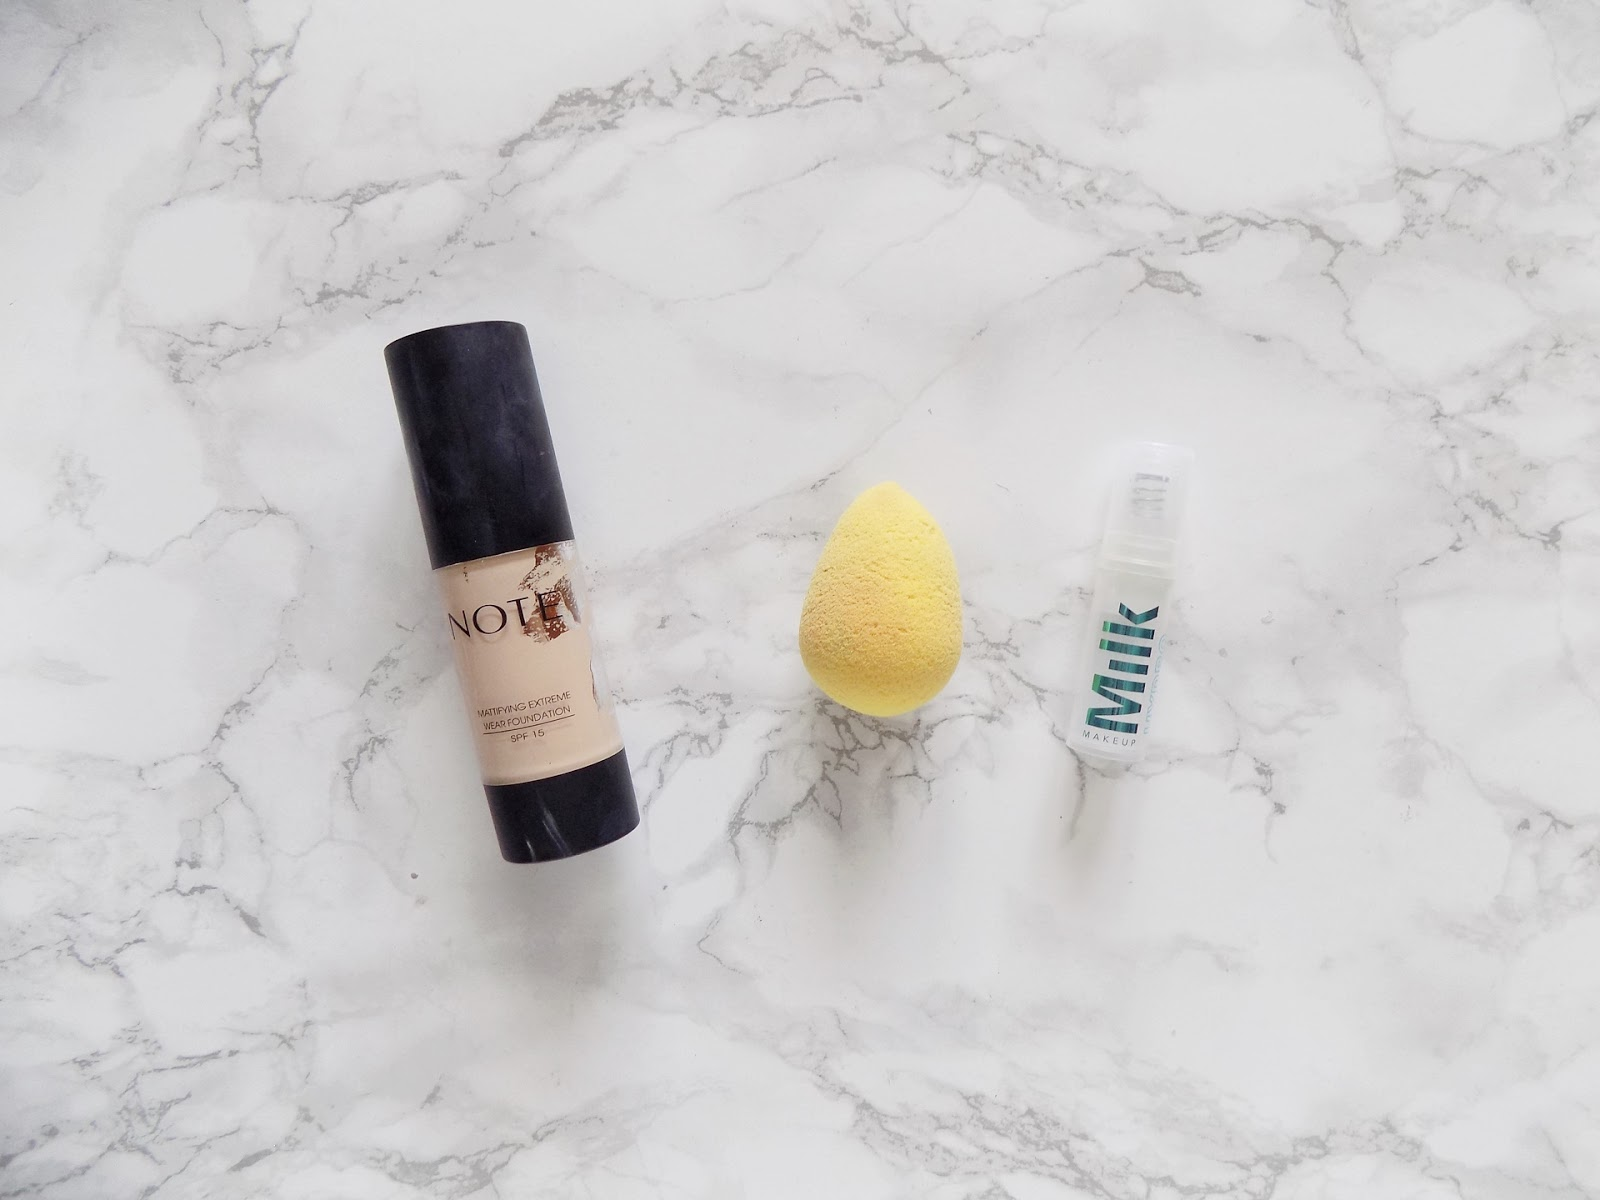 makeup empties review note foundation beauty blender